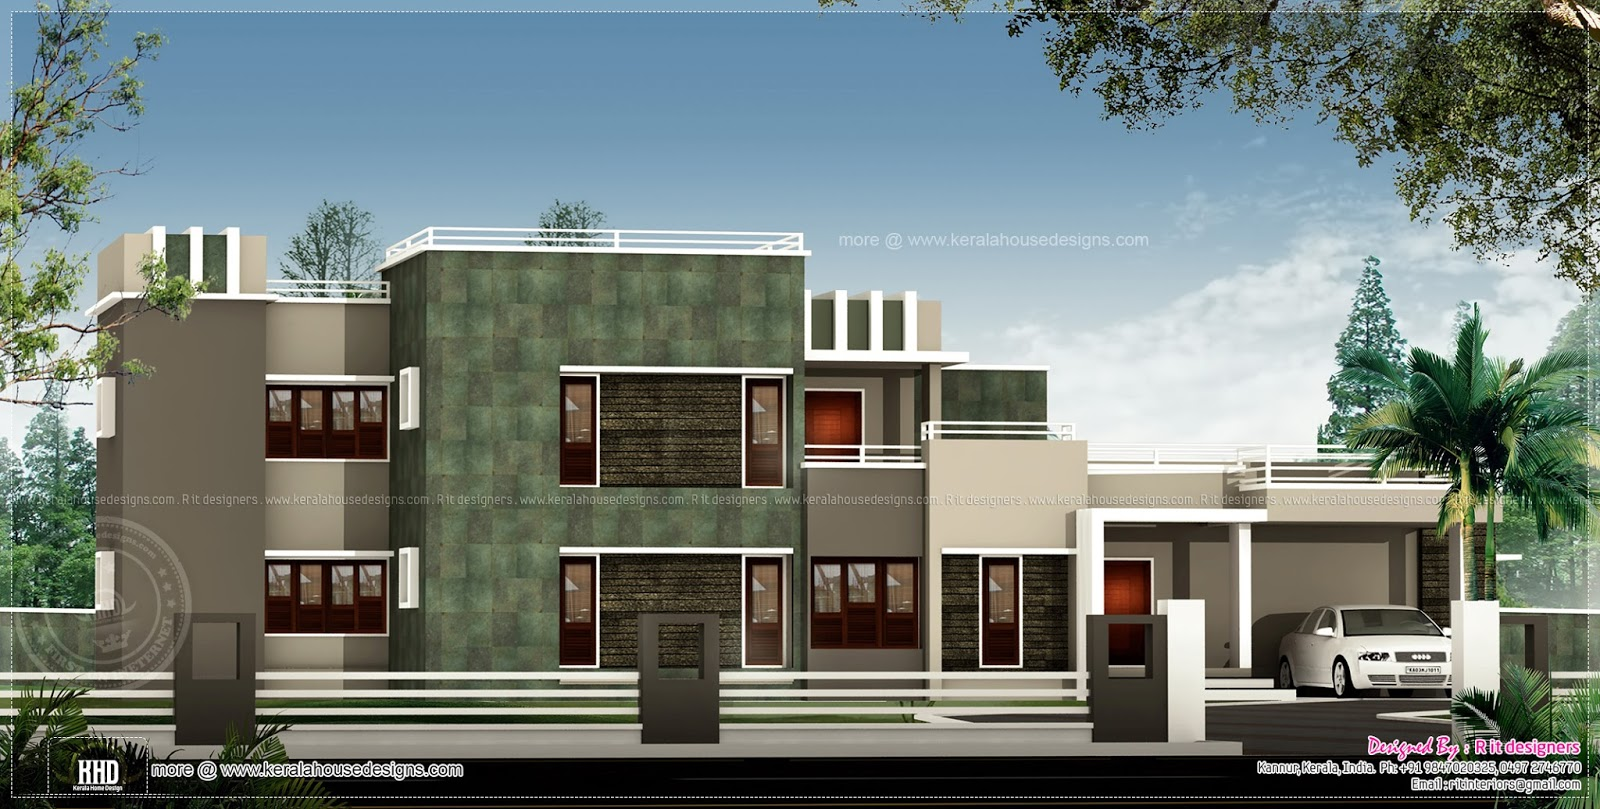 Unique contemporary home in 2993 sq feet home kerala plans for Unique modern house designs